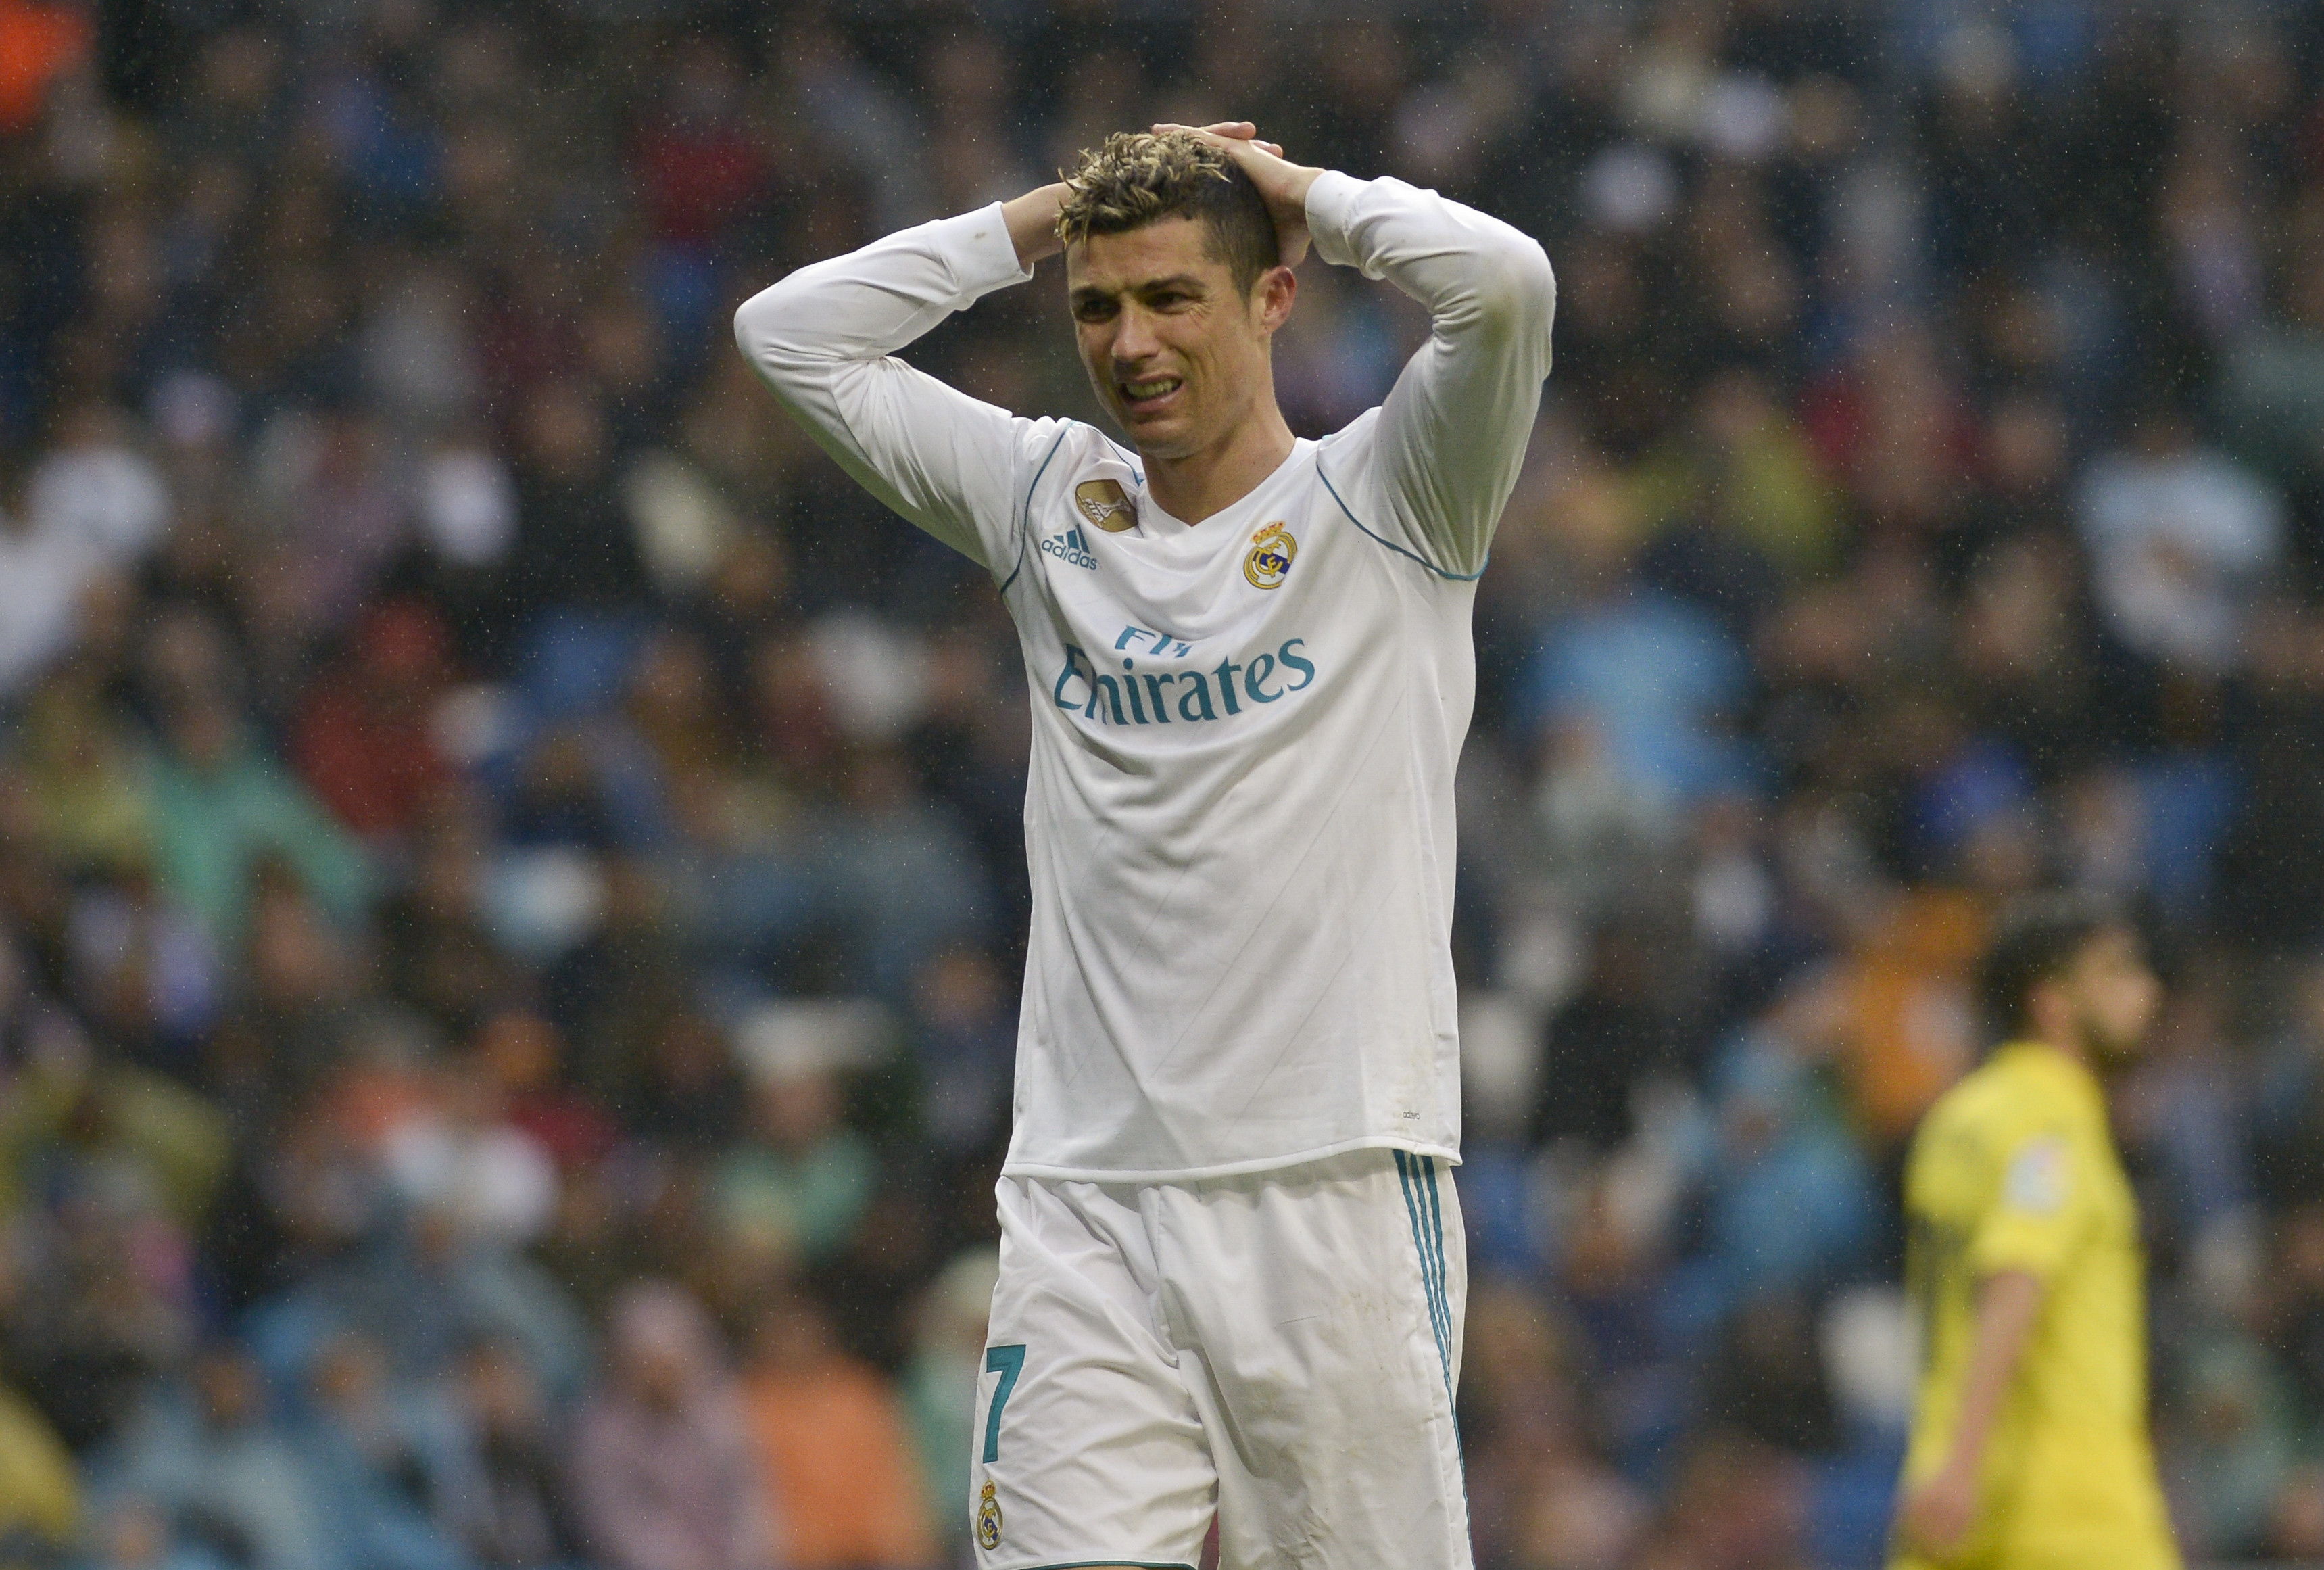 966a04fdc Football  Poor Cristiano Ronaldo performance sparks outrage amongst Real  Madrid fans